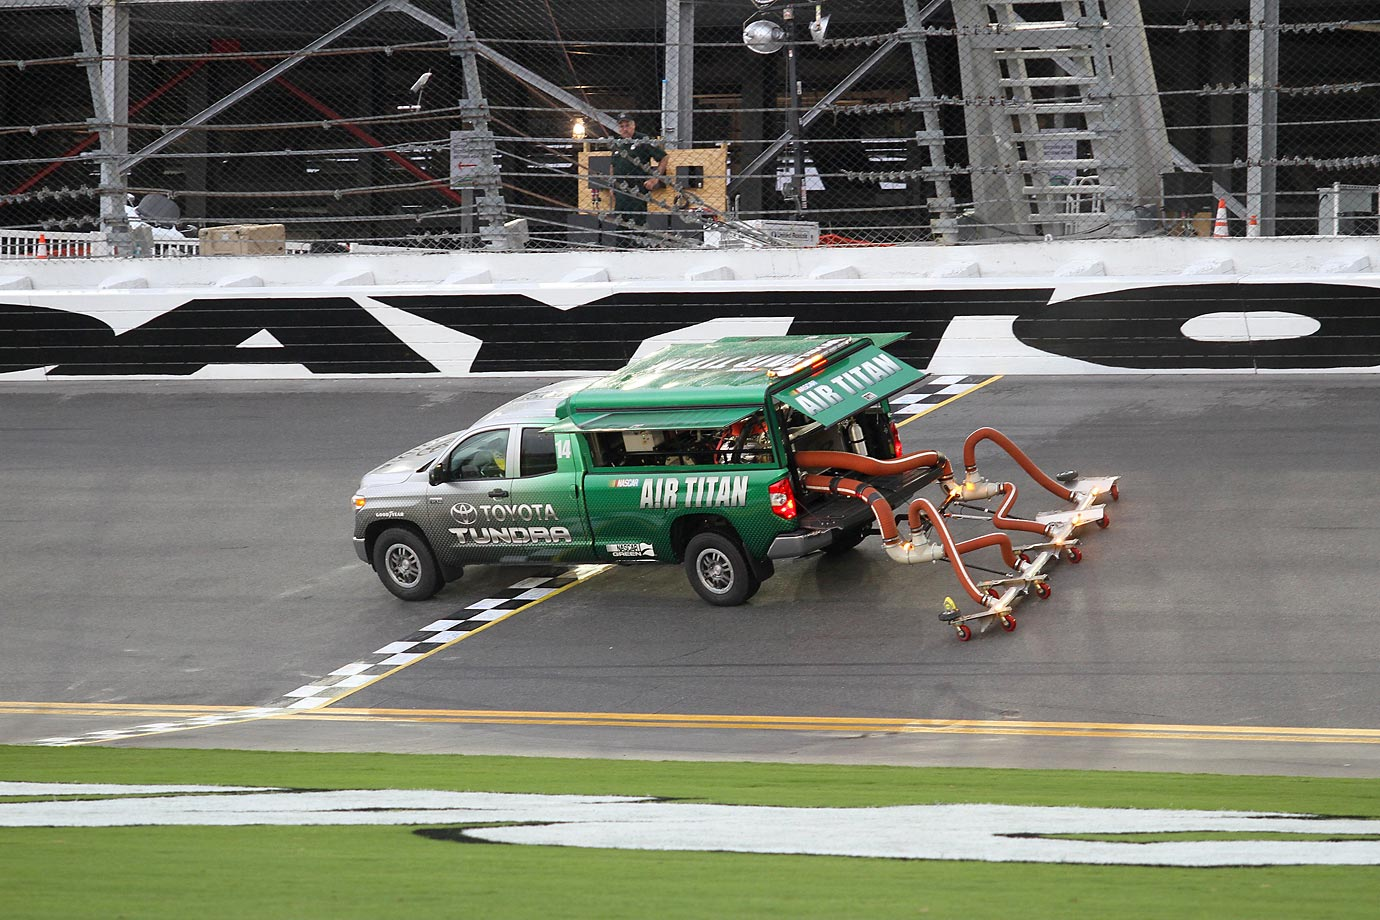 The Air Titan truck dries the track before the Xfinity Series Subway Firecracker 250 race in Daytona.